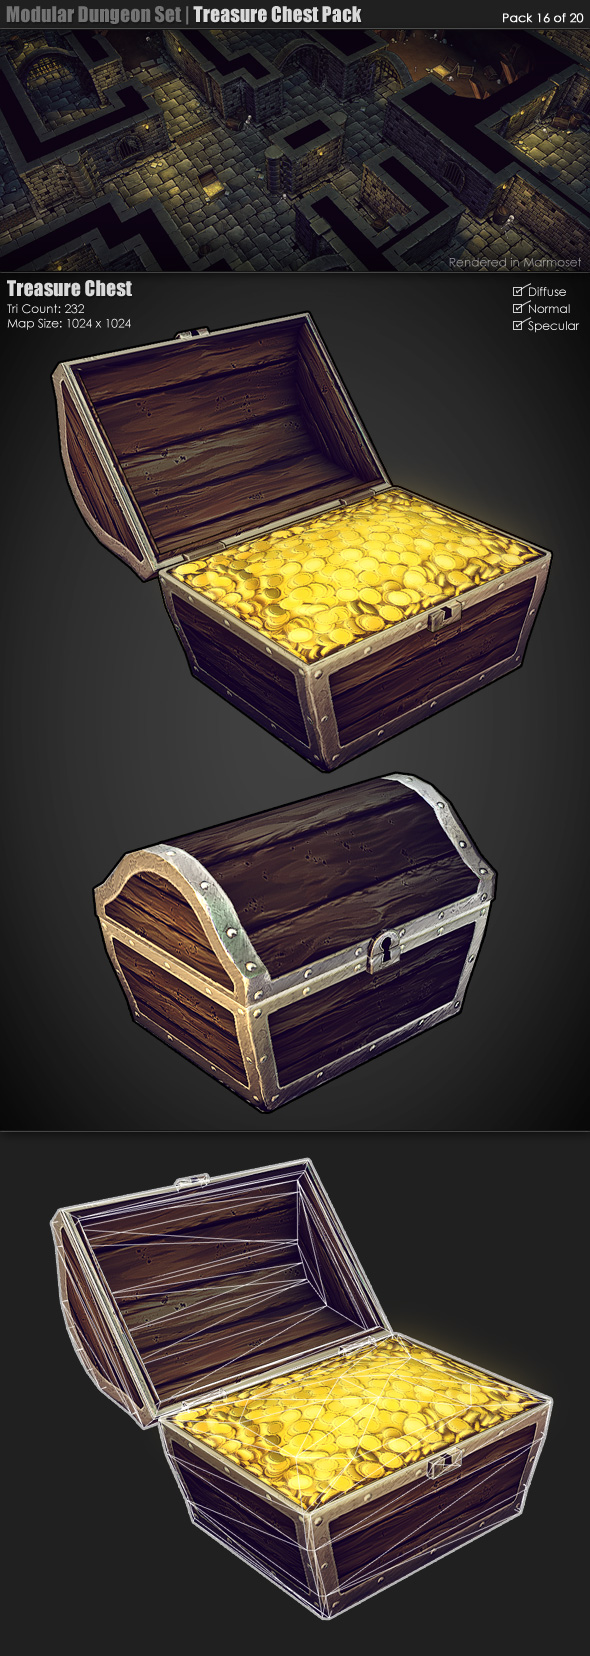 3DOcean Modular Dungeon Set Treasure Chest Pack 16 of 20 233377